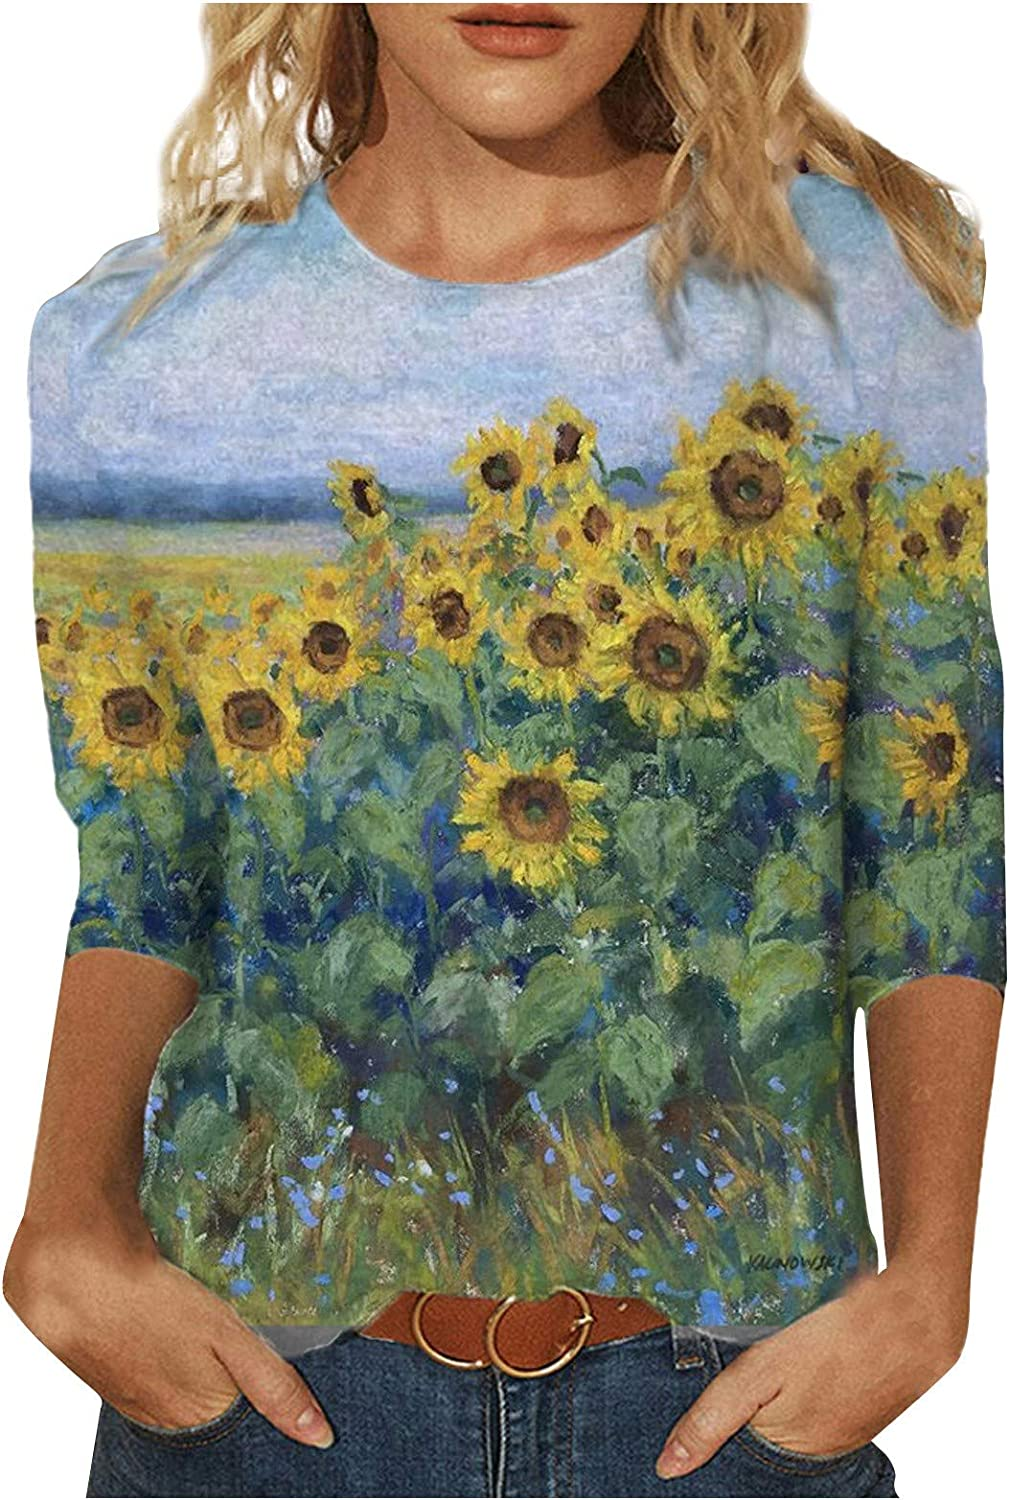 Womens Retro Fashion Tops Sunflower Landscape Printed Mid-Length Sleeves Crew-Neck Casual Loose Fit Tee Tops